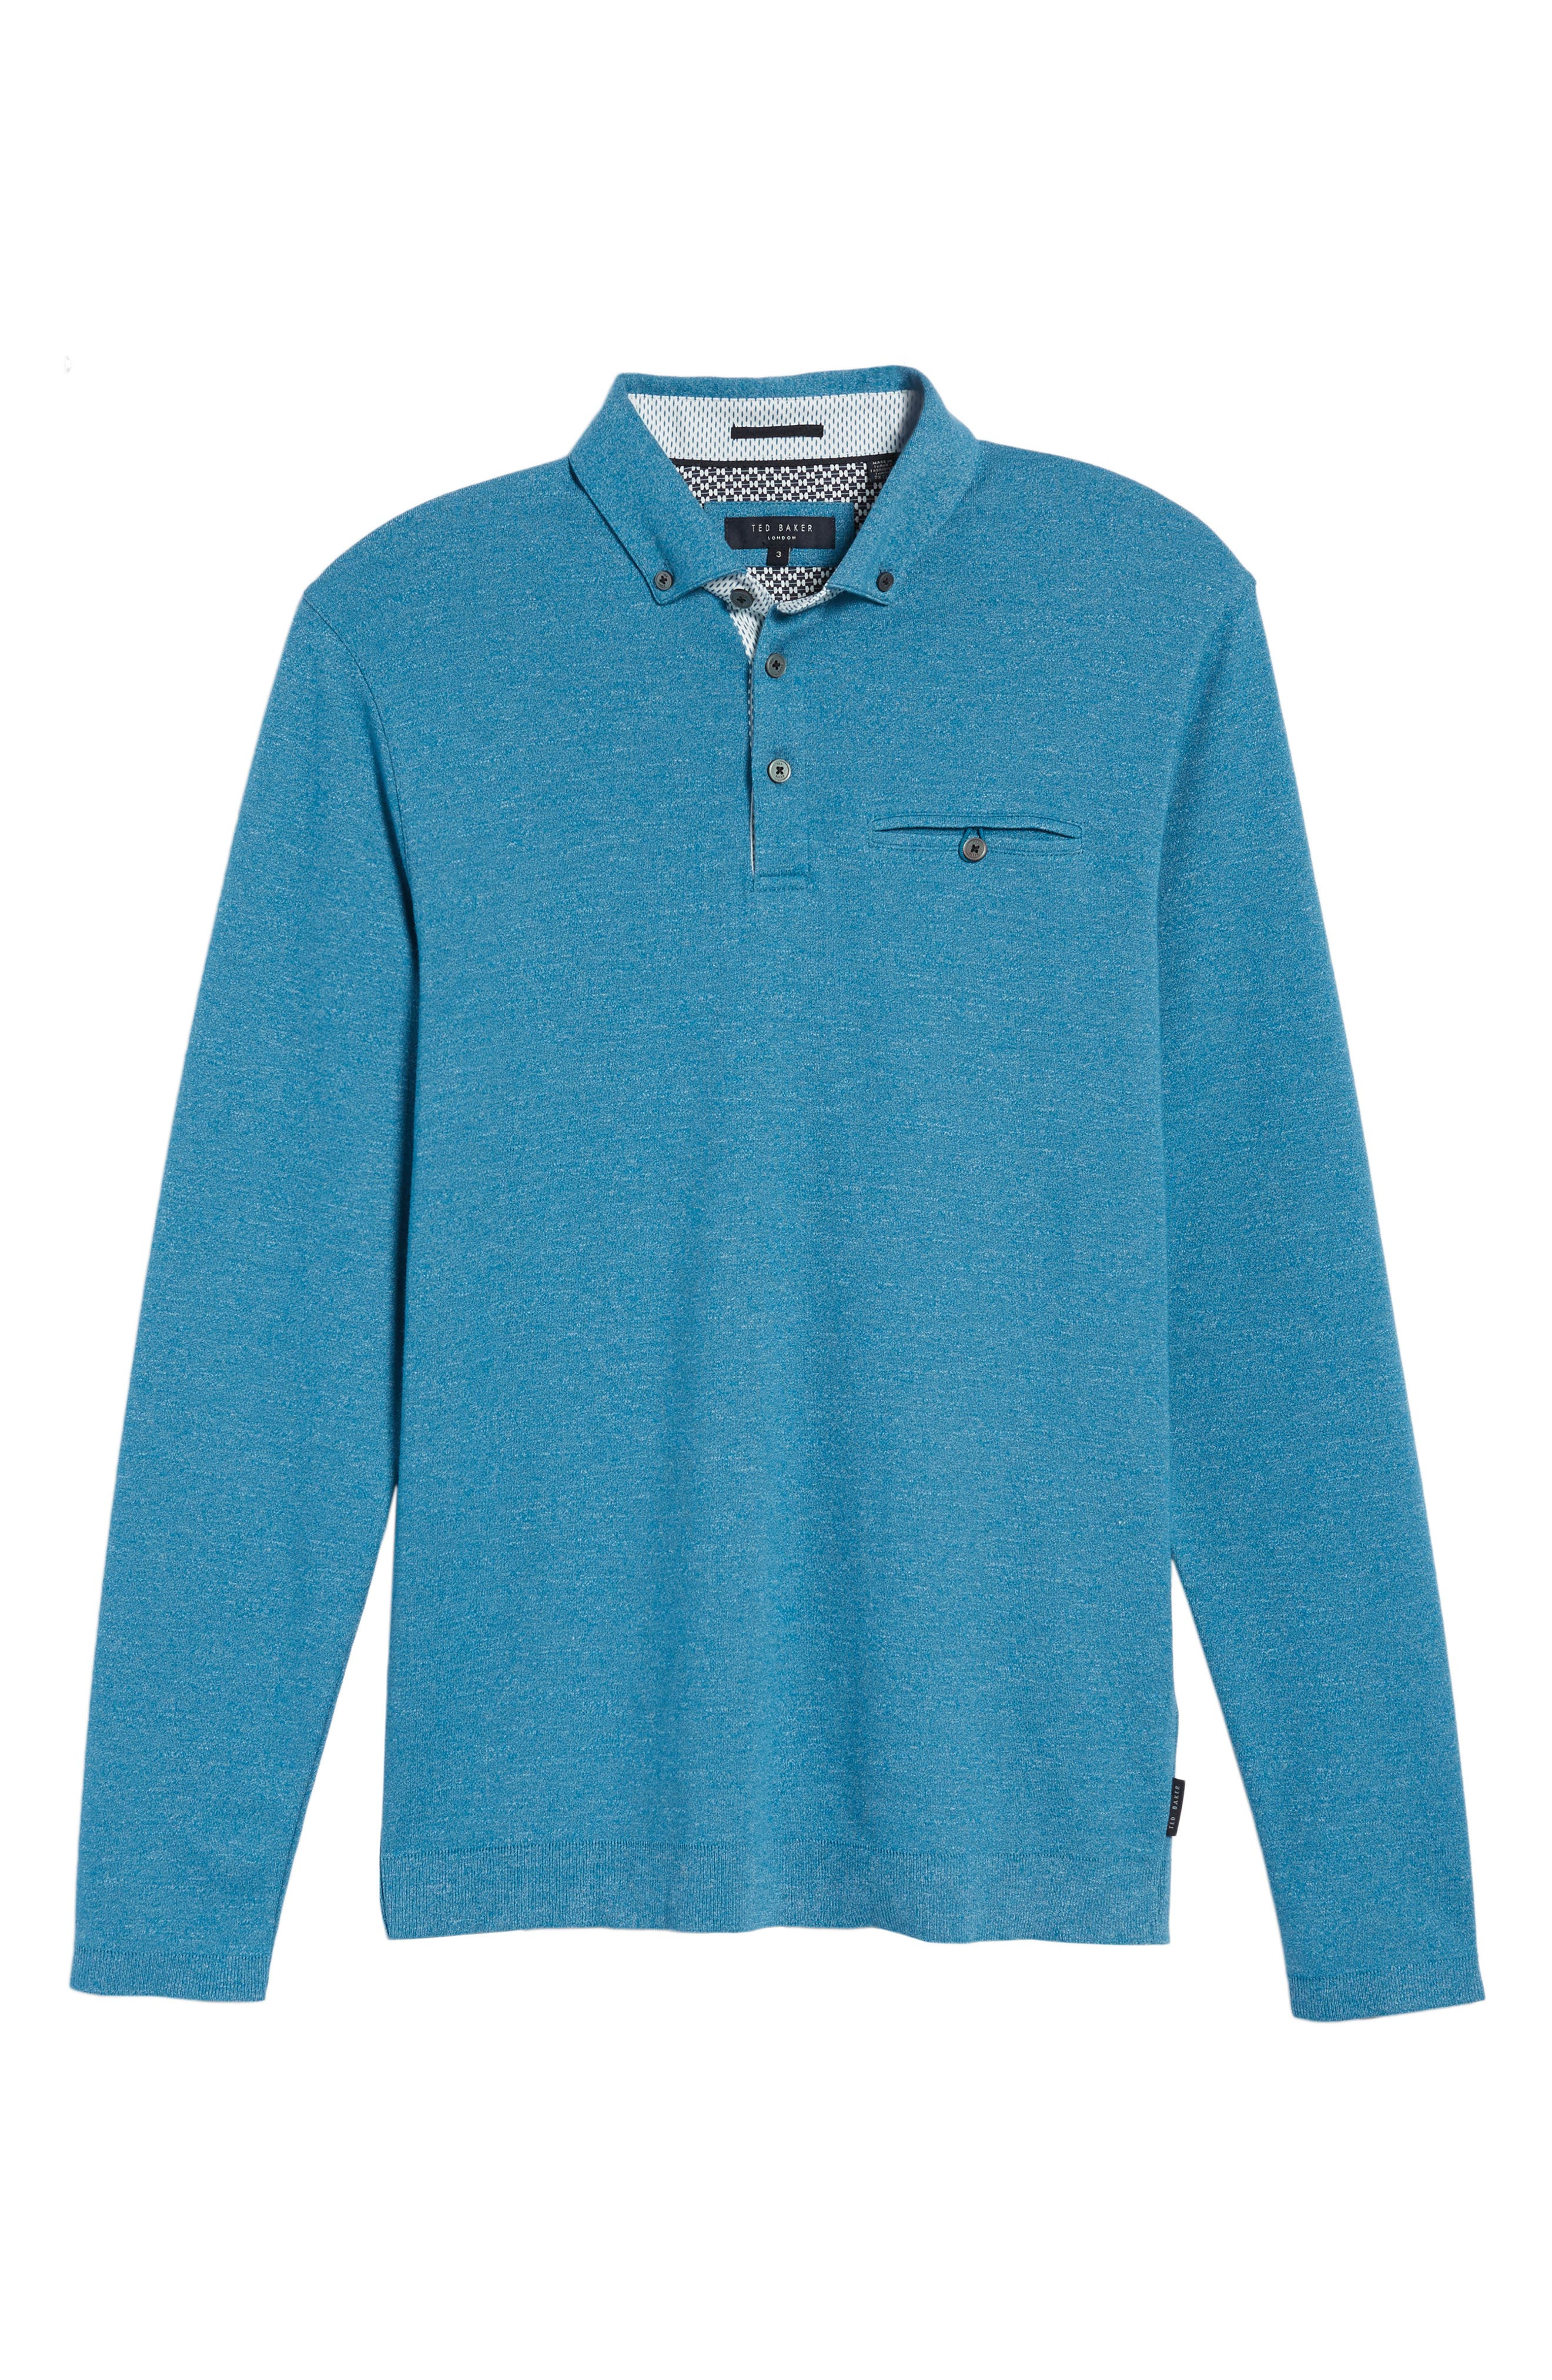 Yamway Modern Slim Fit Long Sleeve Polo,                             Alternate thumbnail 18, color,